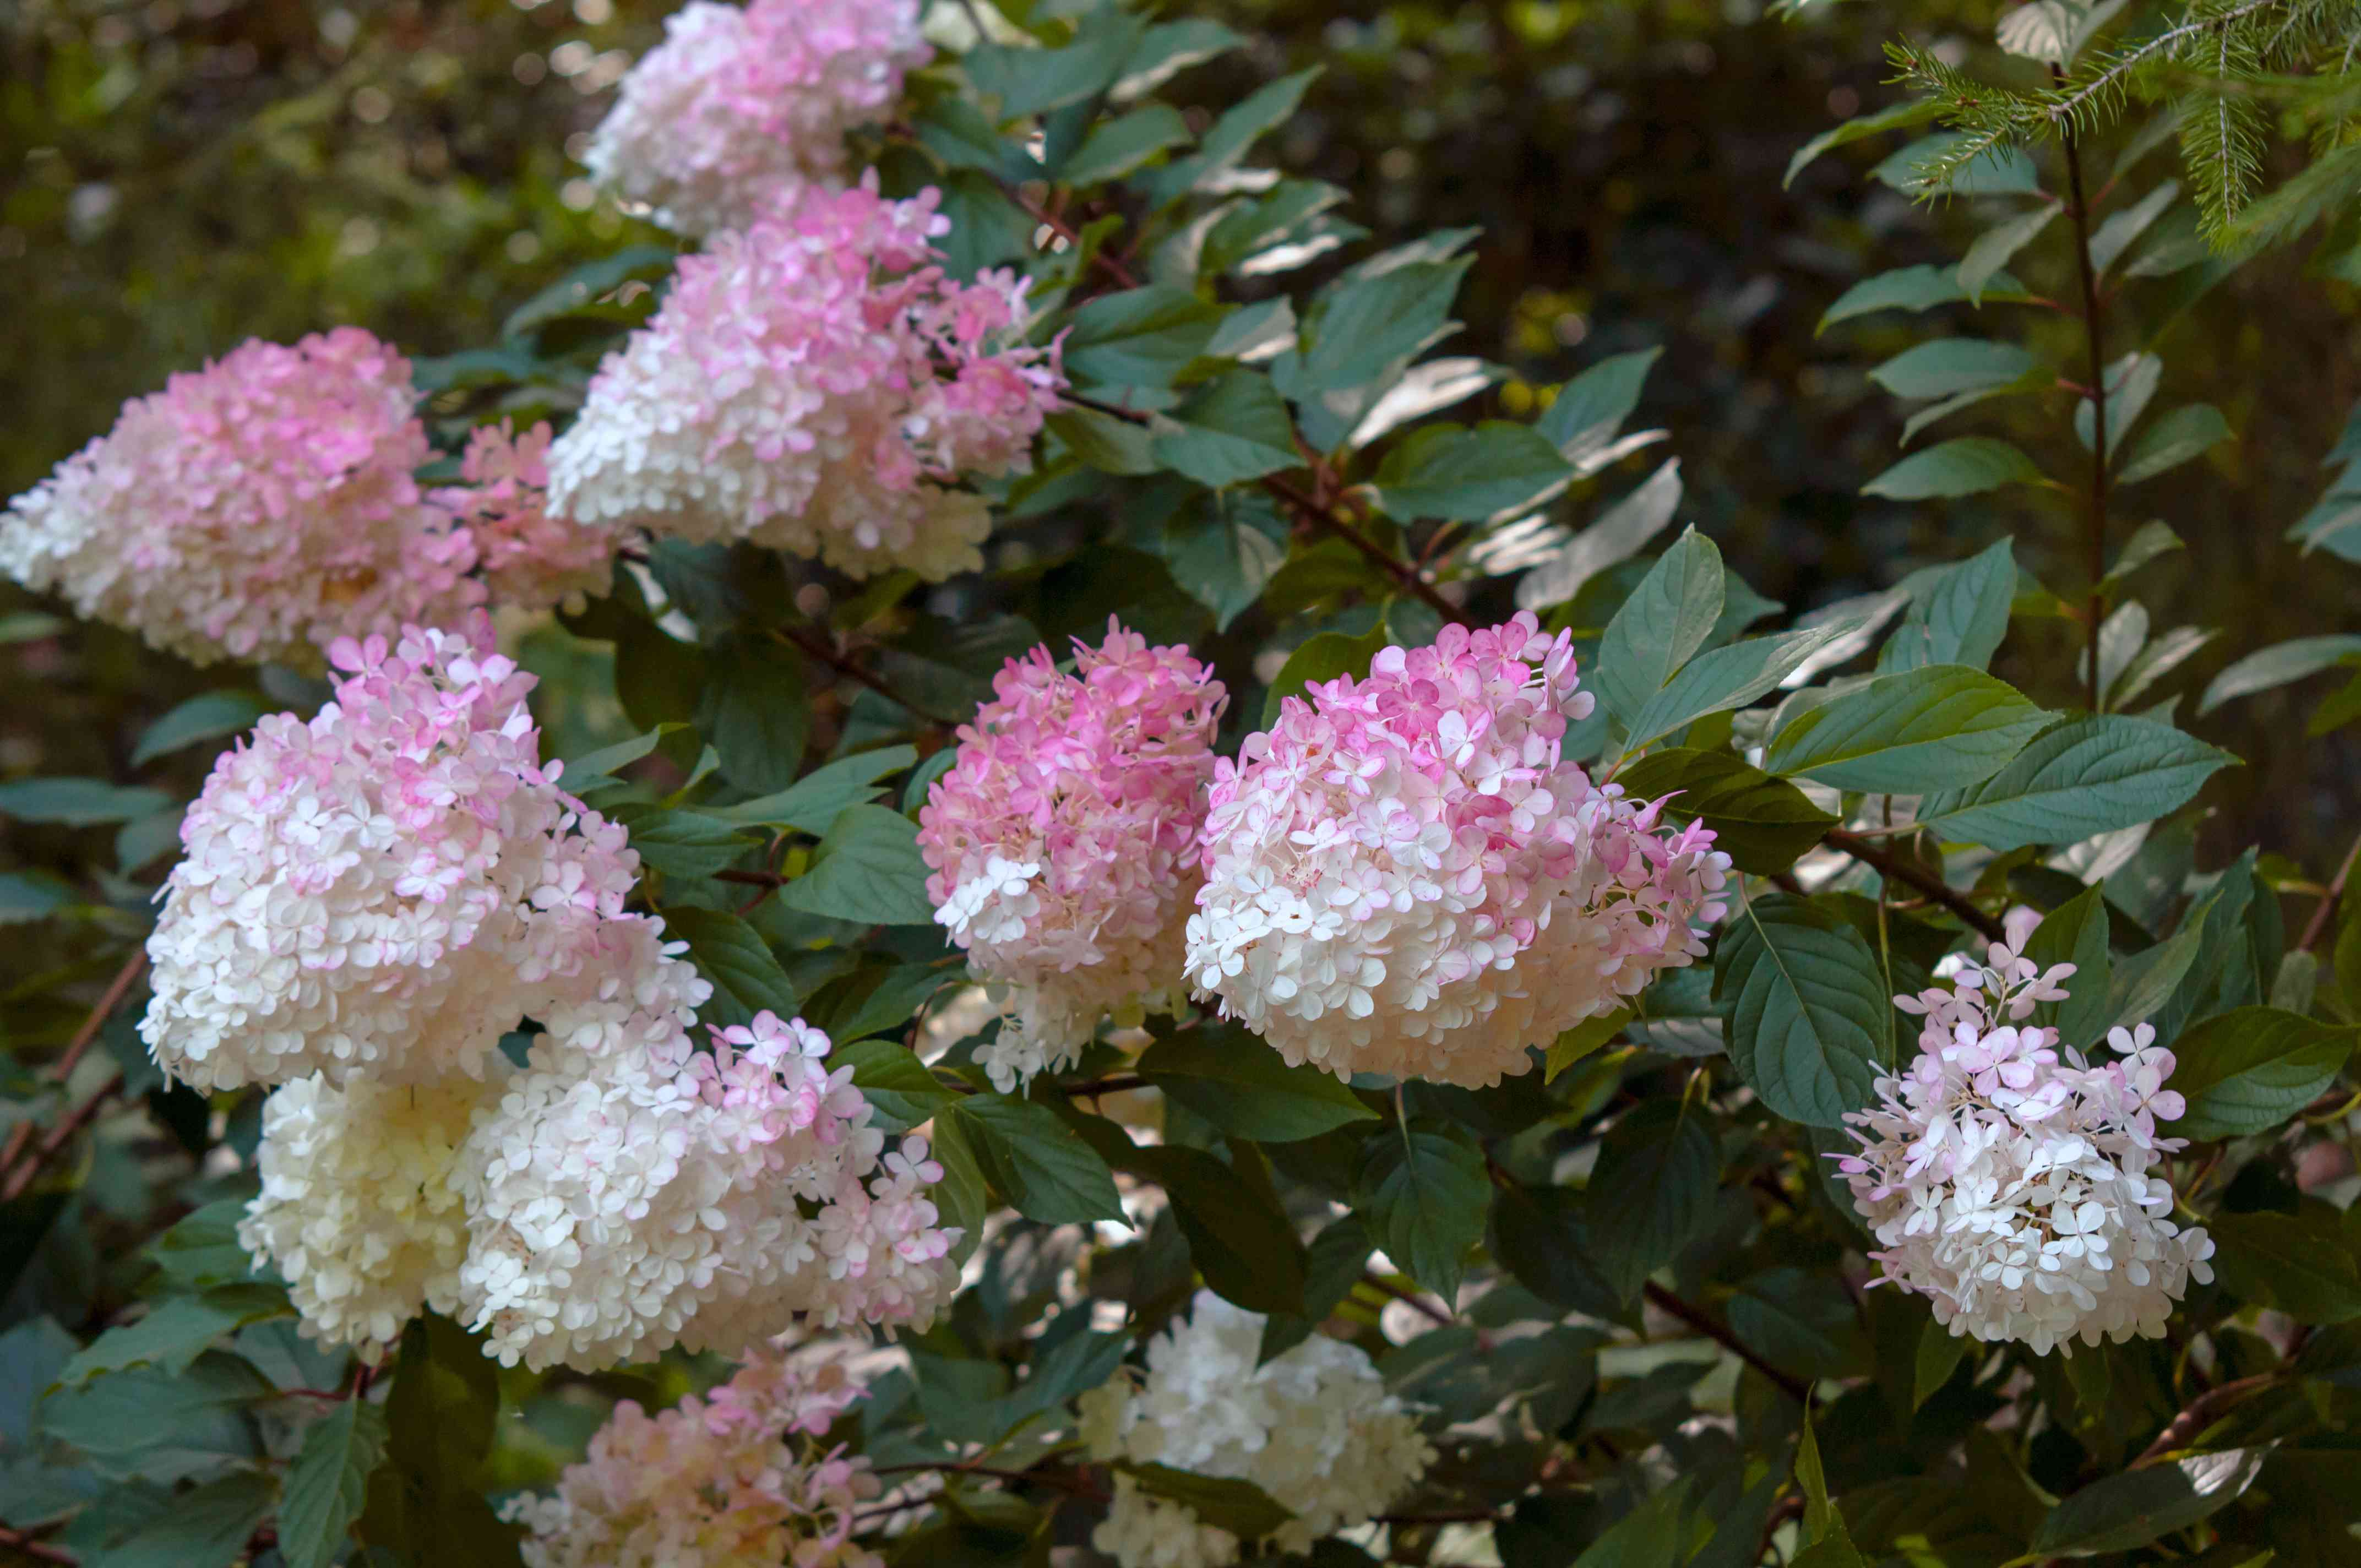 Strawberry vanilla hydrangeas on branches with white and pink bi-colored flower heads